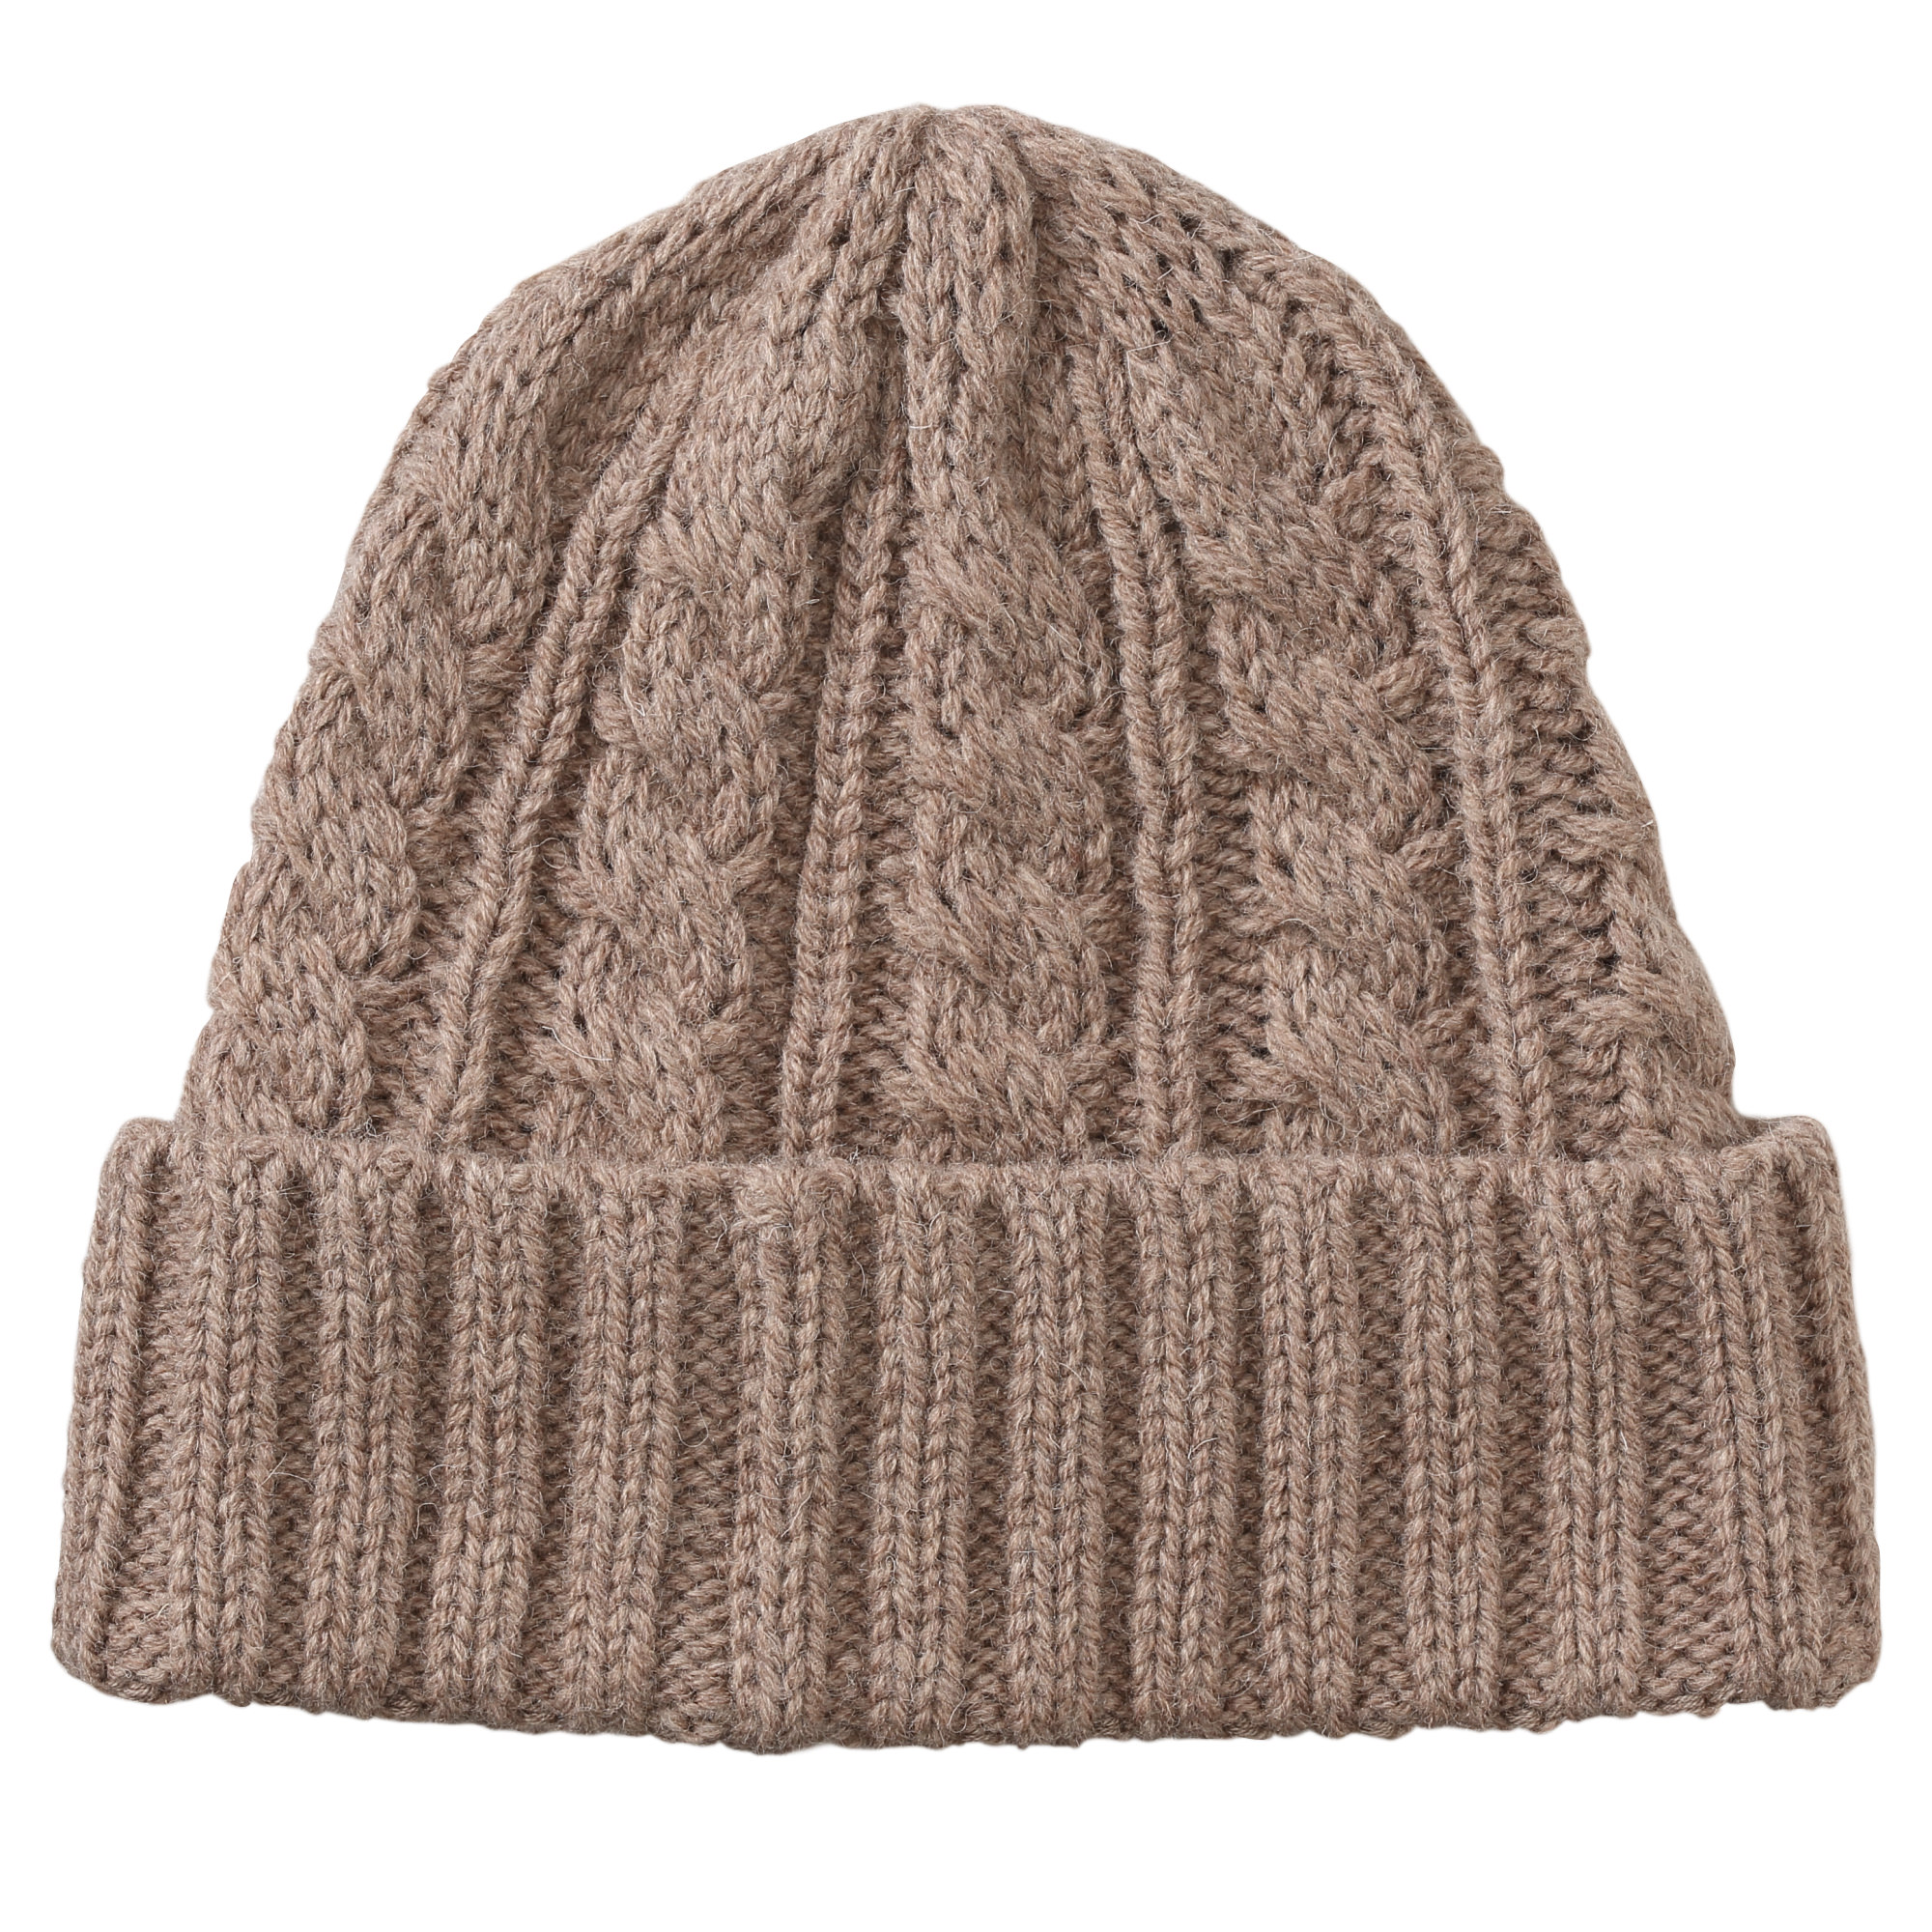 Wool Mixed Less Itchiness Washable Cable Pattern Watch Cap U.P. $29 (Less 10%)